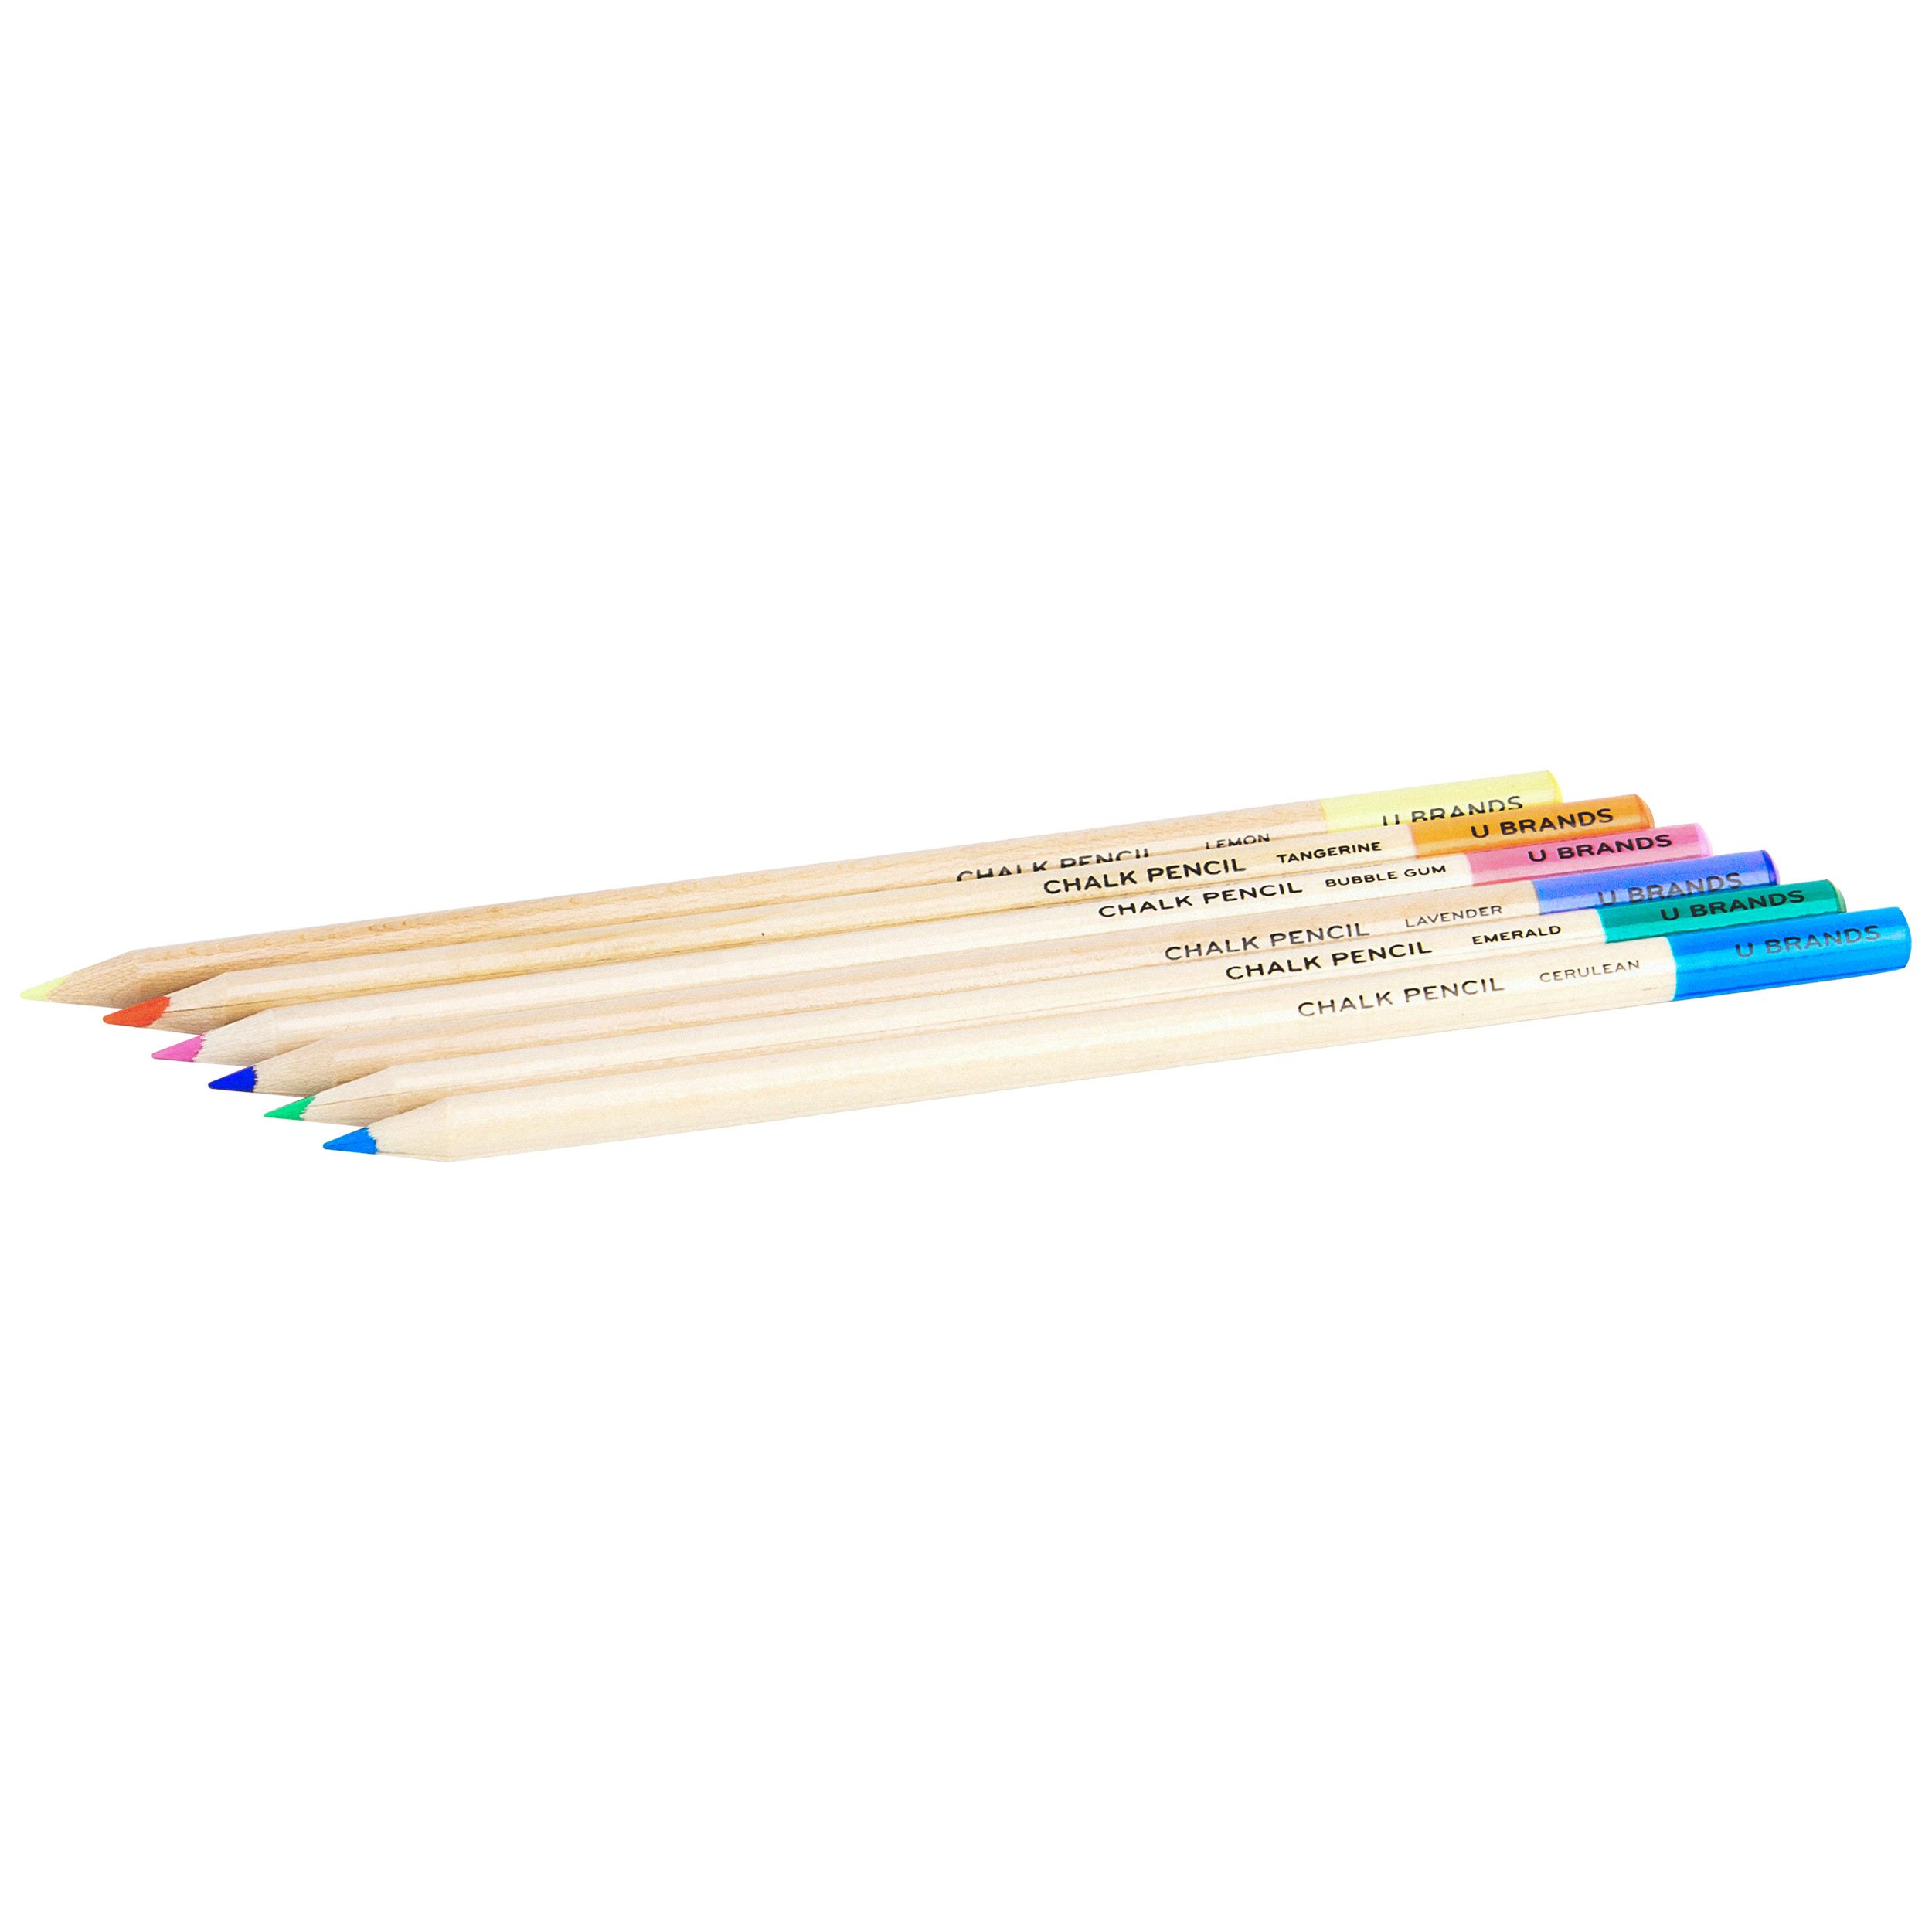 U Brands Chalkboard Colored Pencils, Assorted Colors, 6-Count by U Brands (Image #3)